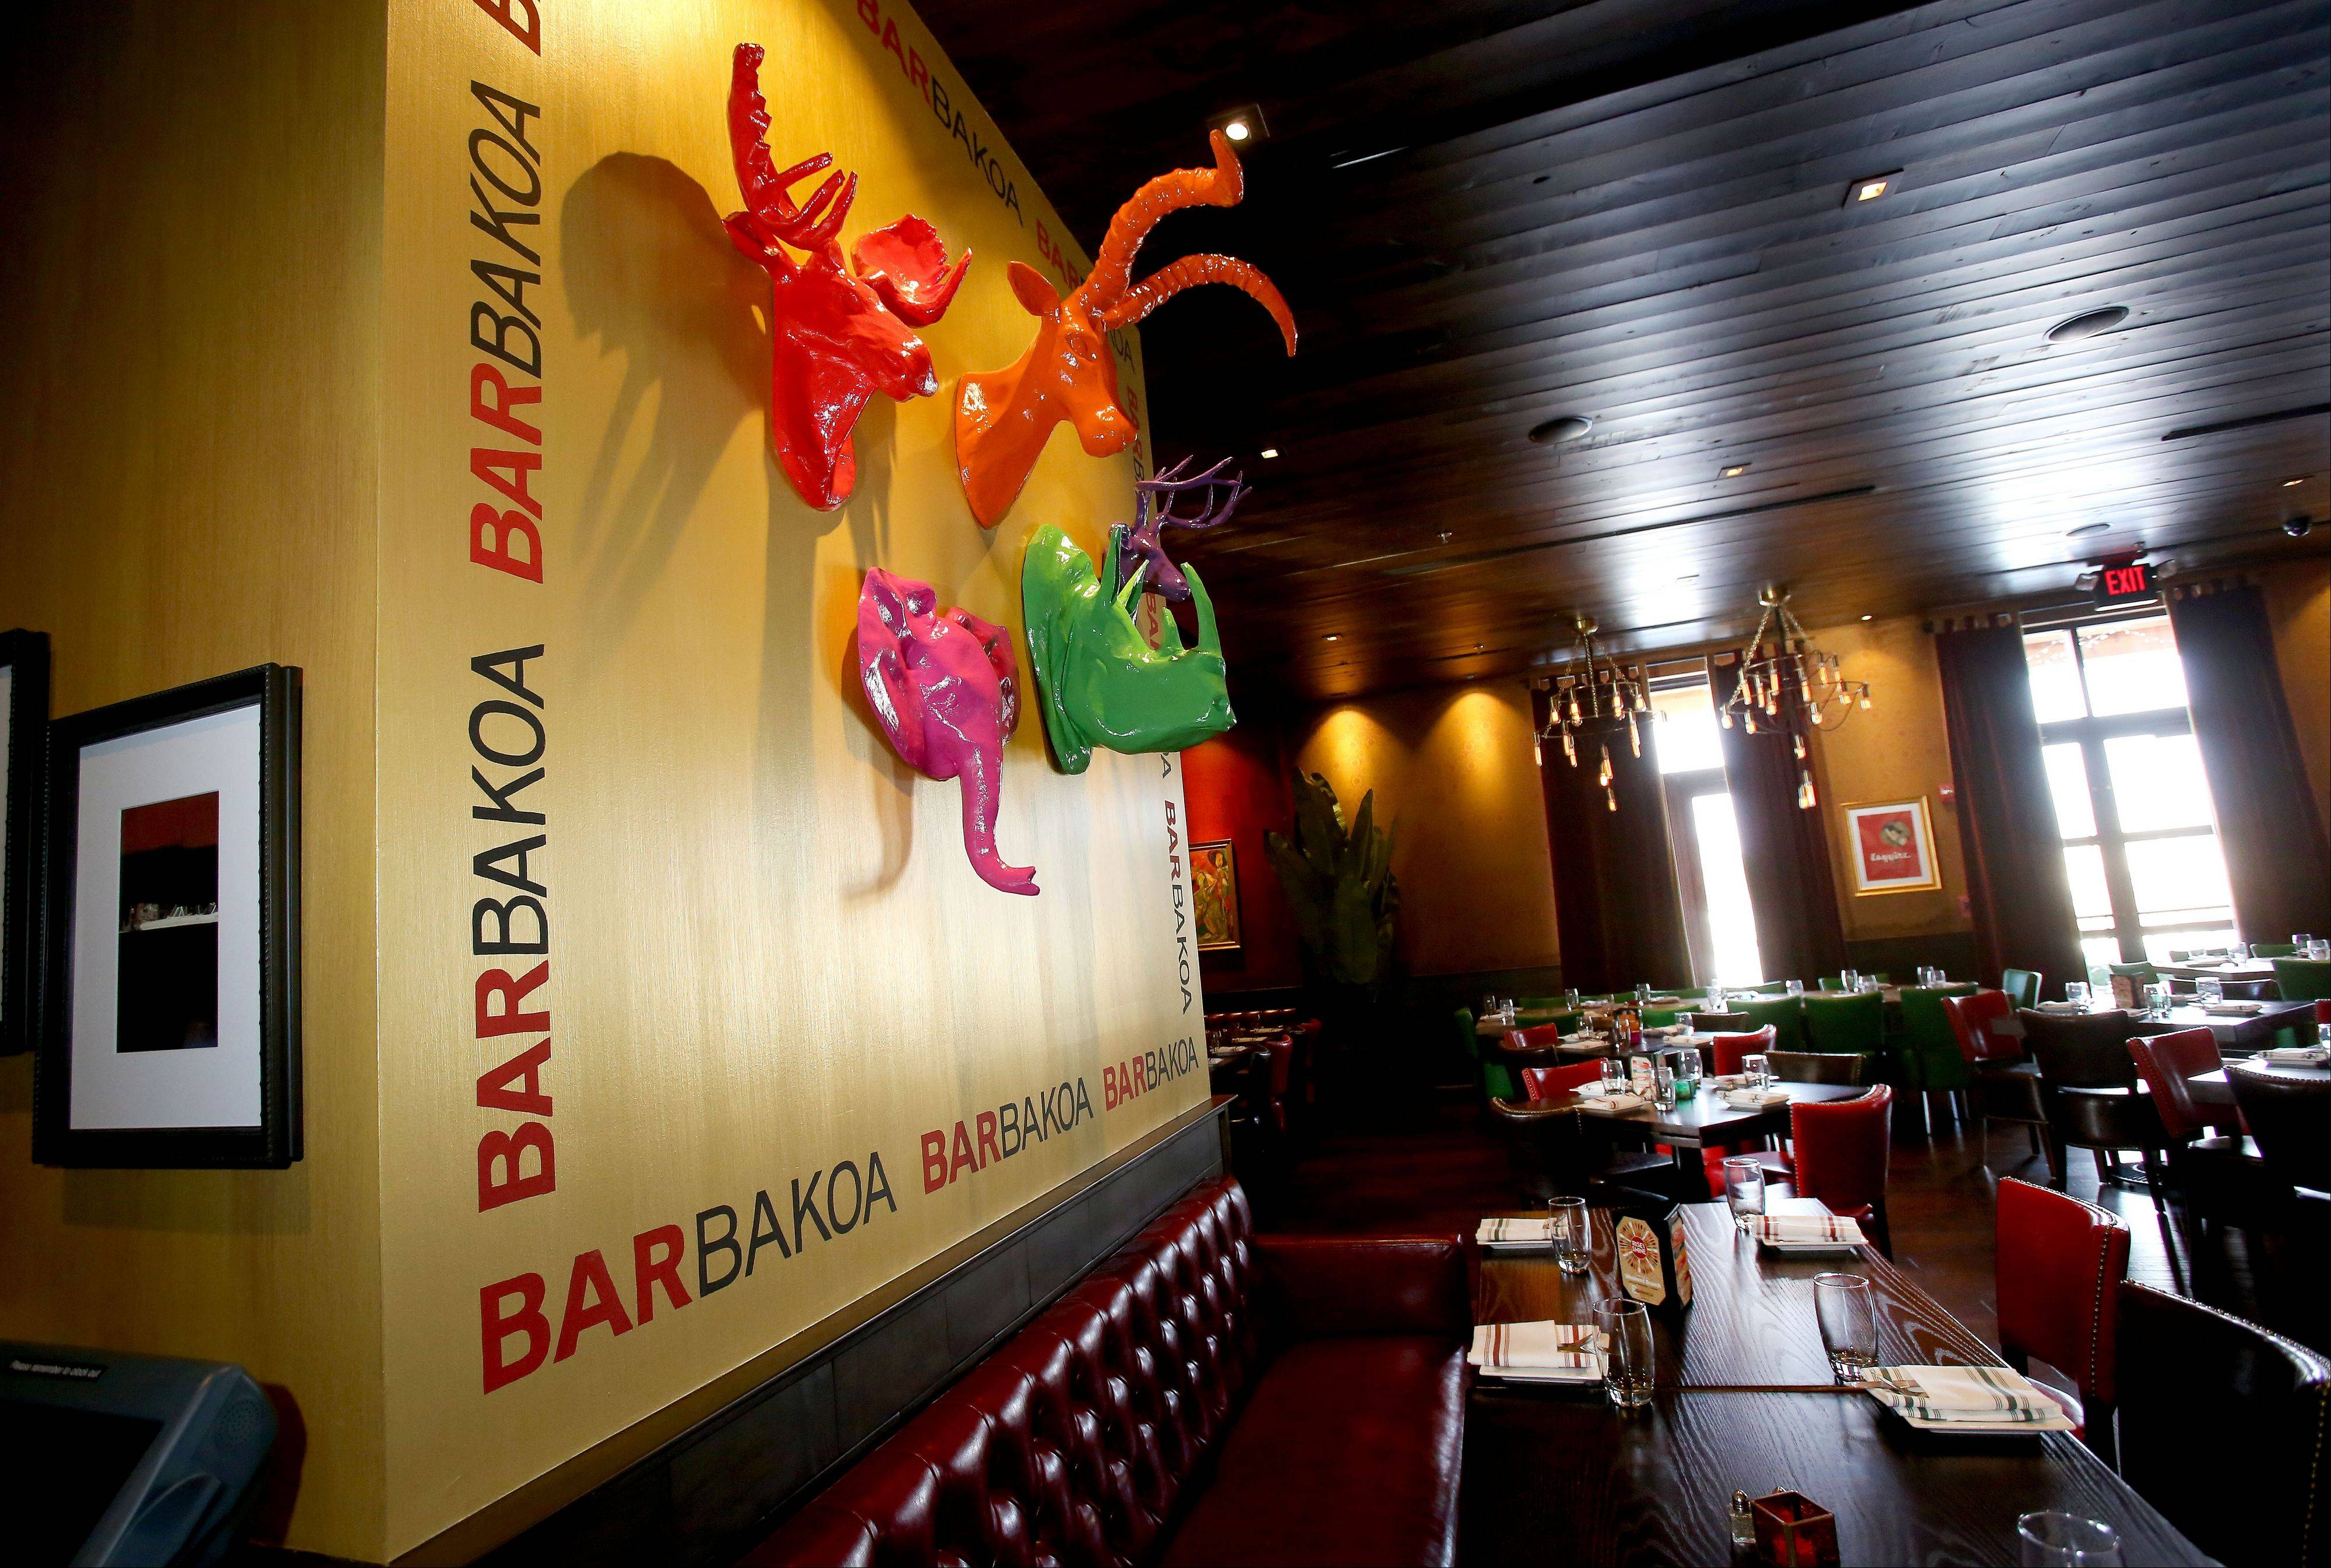 Barbakoa's funky and lively decor adds to the restaurant's appeal.